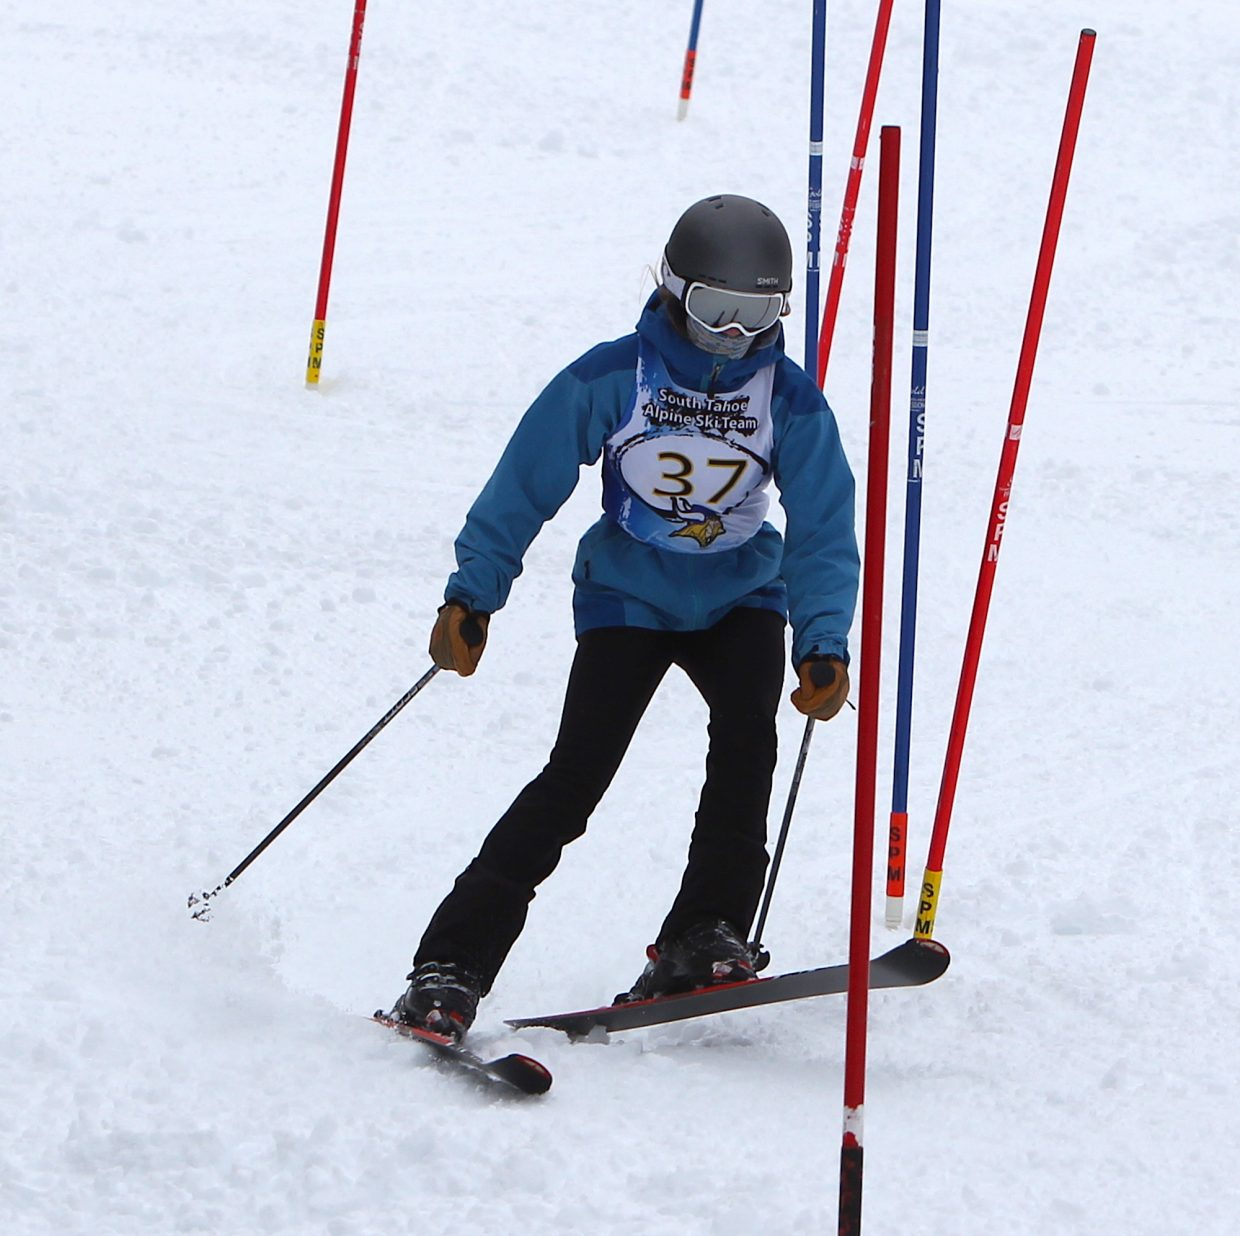 Jamie Johnson on her first run Monday for South Tahoe.